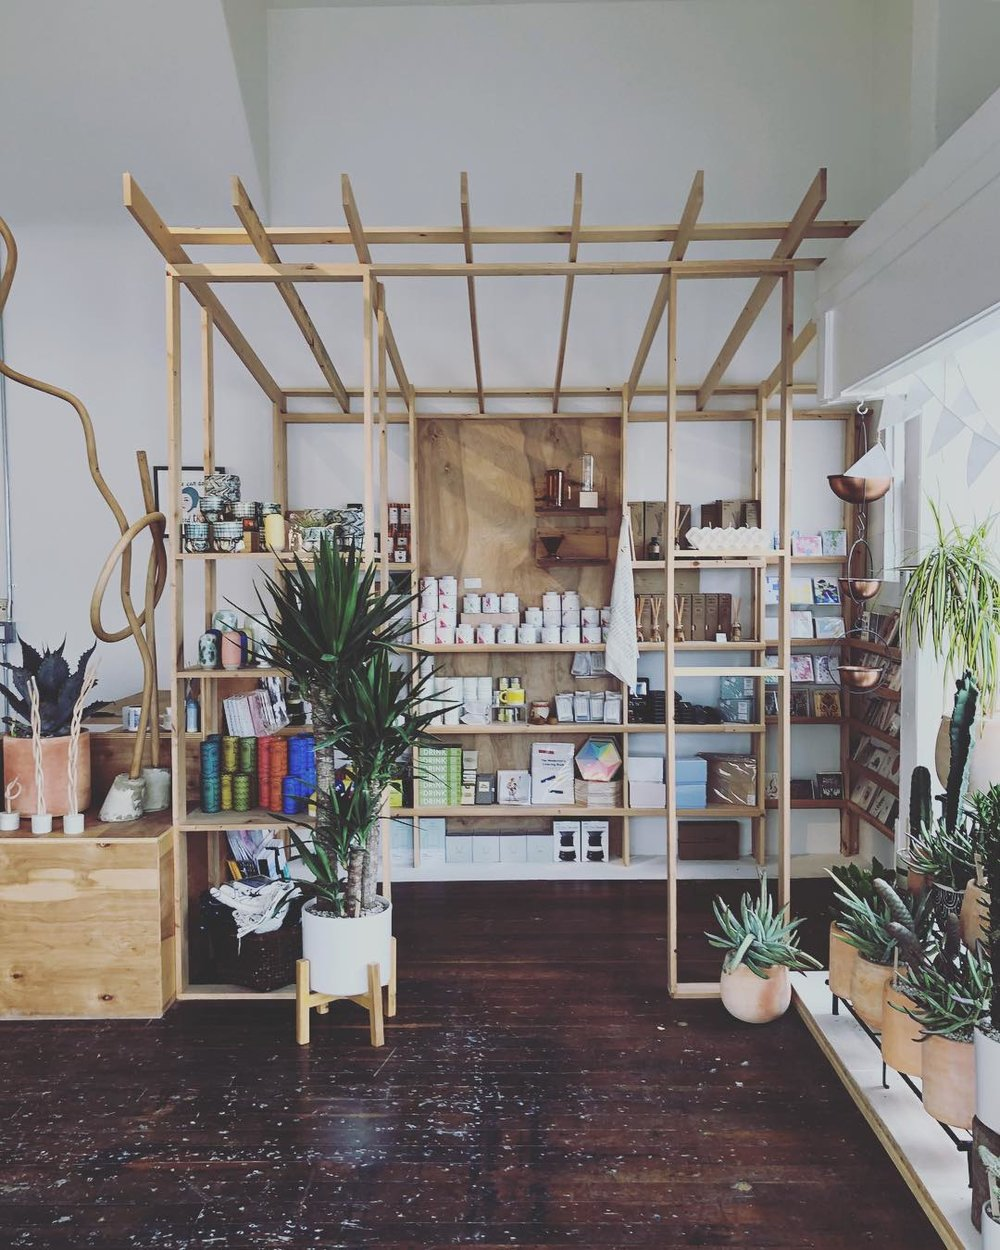 peoplemap-yondersf-shops-and-boutiques3.jpg